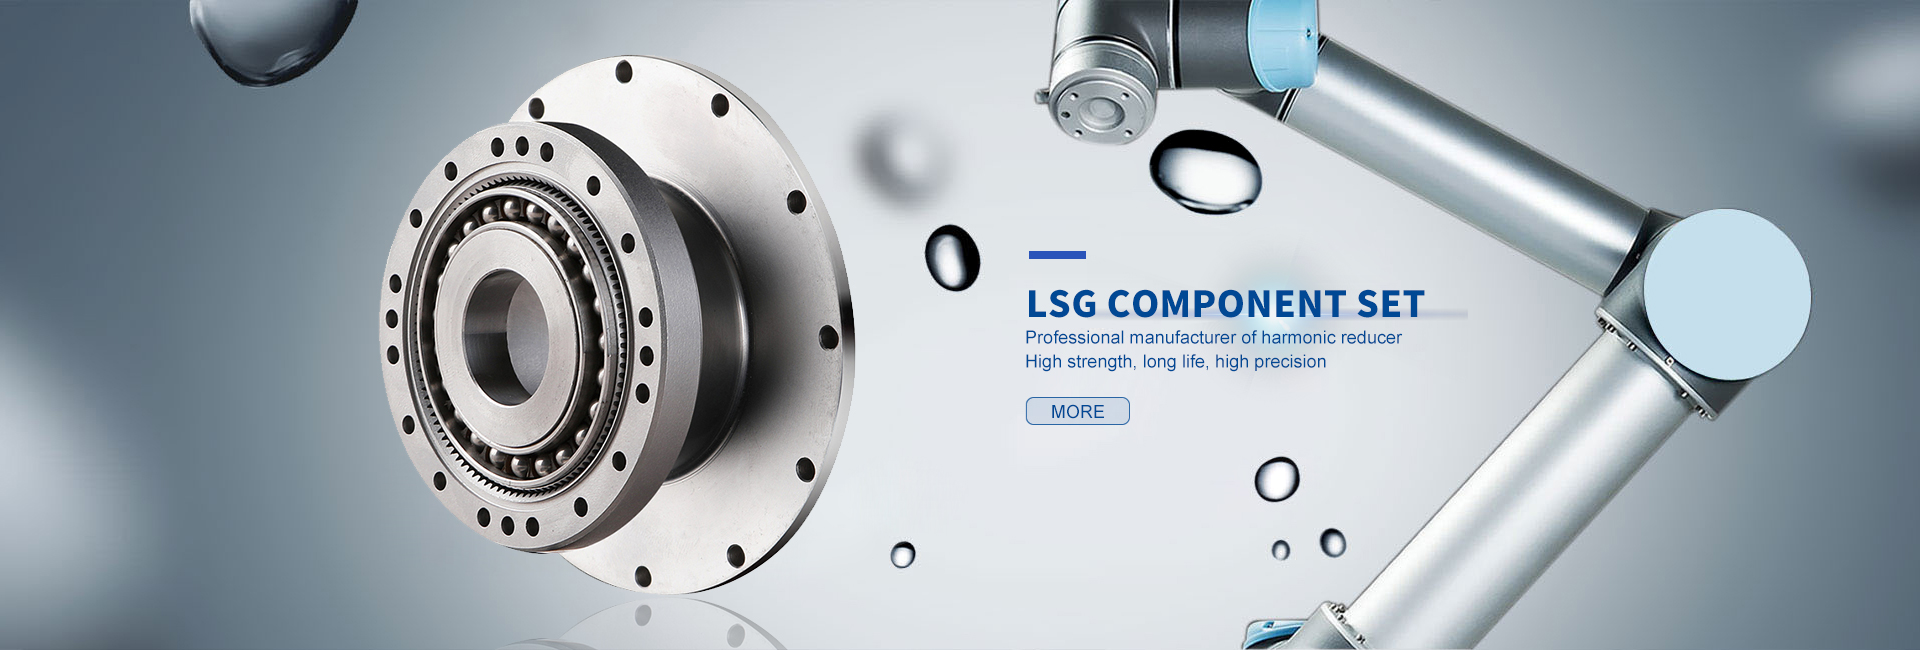 LSG(Component)